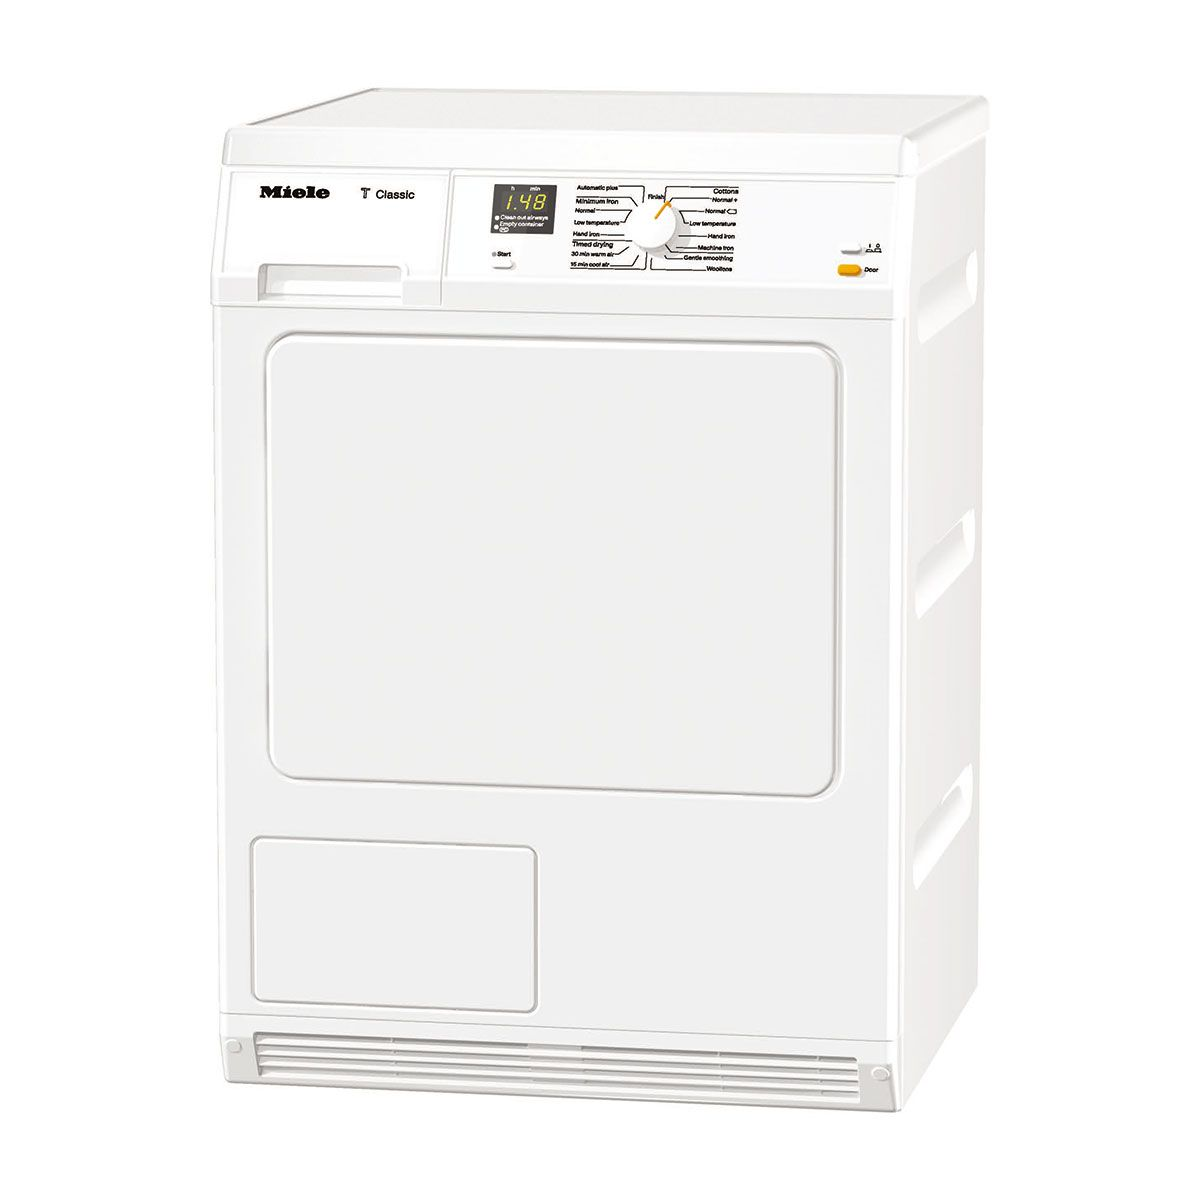 Miele 7kg Condenser Clothes Dryer White | Laundry ...